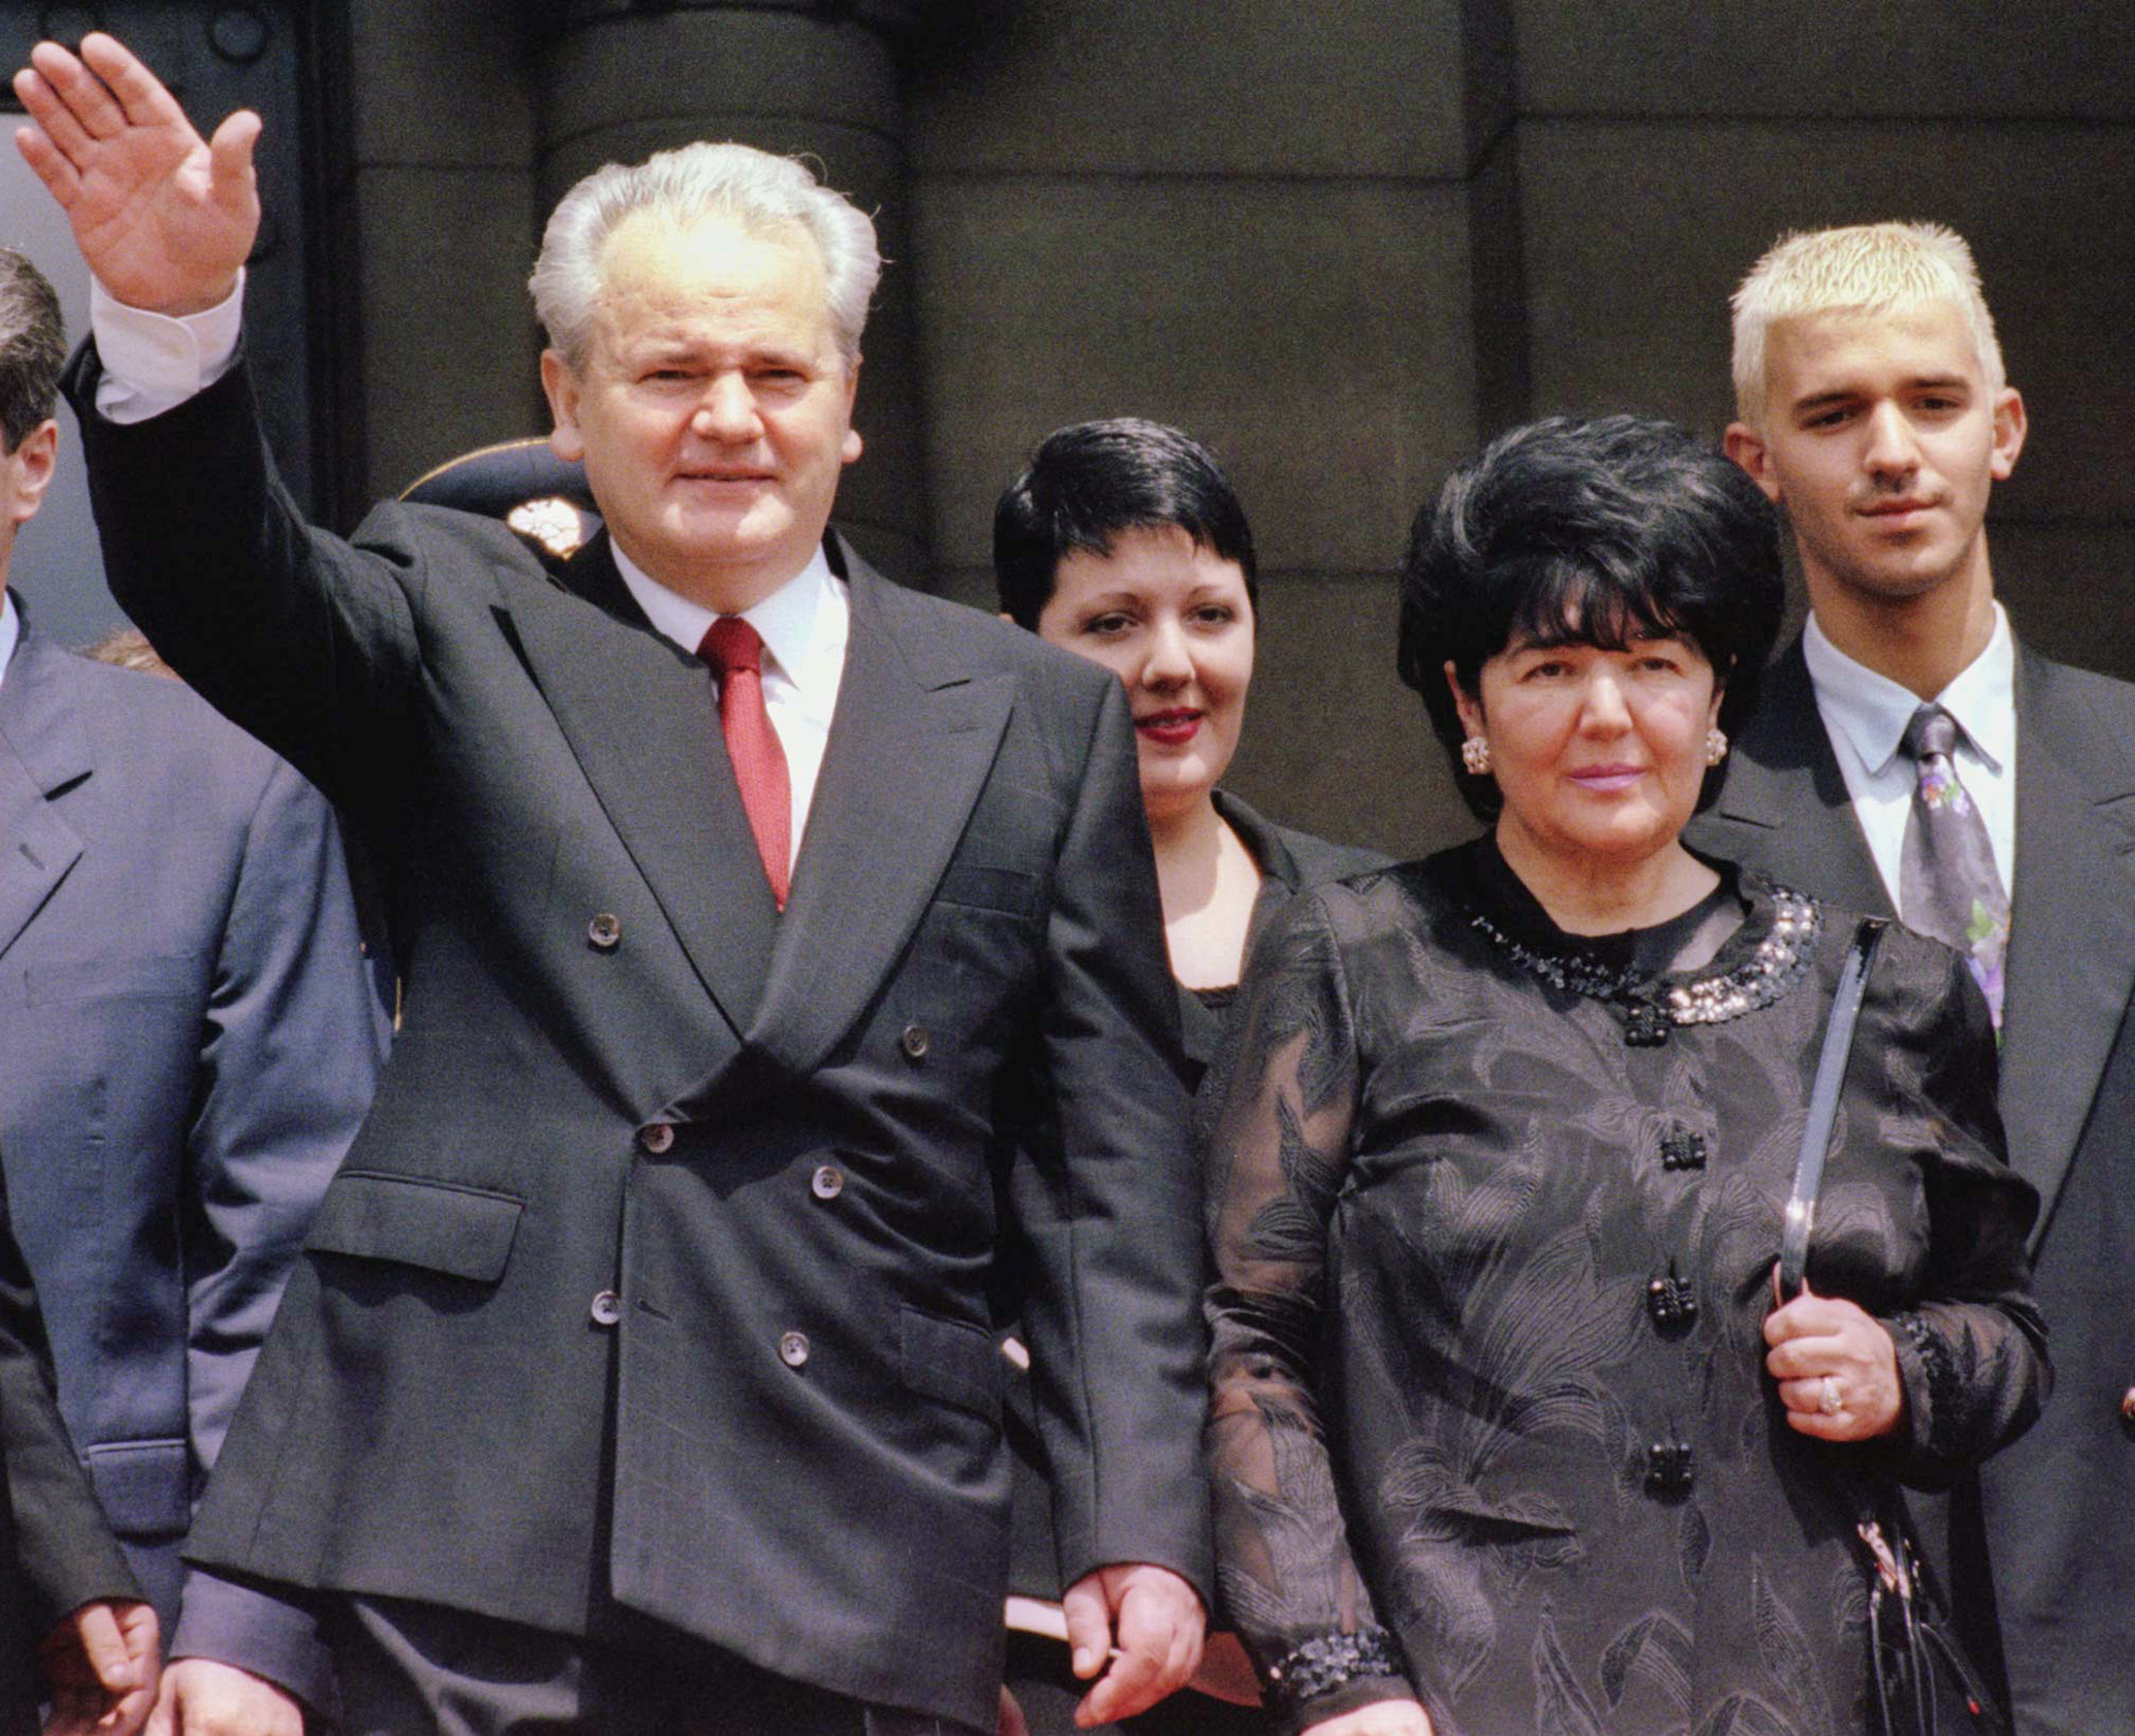 Former Yugoslav president Slobodan Milosevic (L) waves to supporters while standing with his daughter Marija (2nd L), wife and coalition partner Mira Markovic (2nd R) and son Marko after the inauguration ceremony in Belgrade in this July 23, 1997 file photo. Milosevic has died, the UN tribunal said on March 11, 2006, just months before his war crimes trial was expected to conclude.